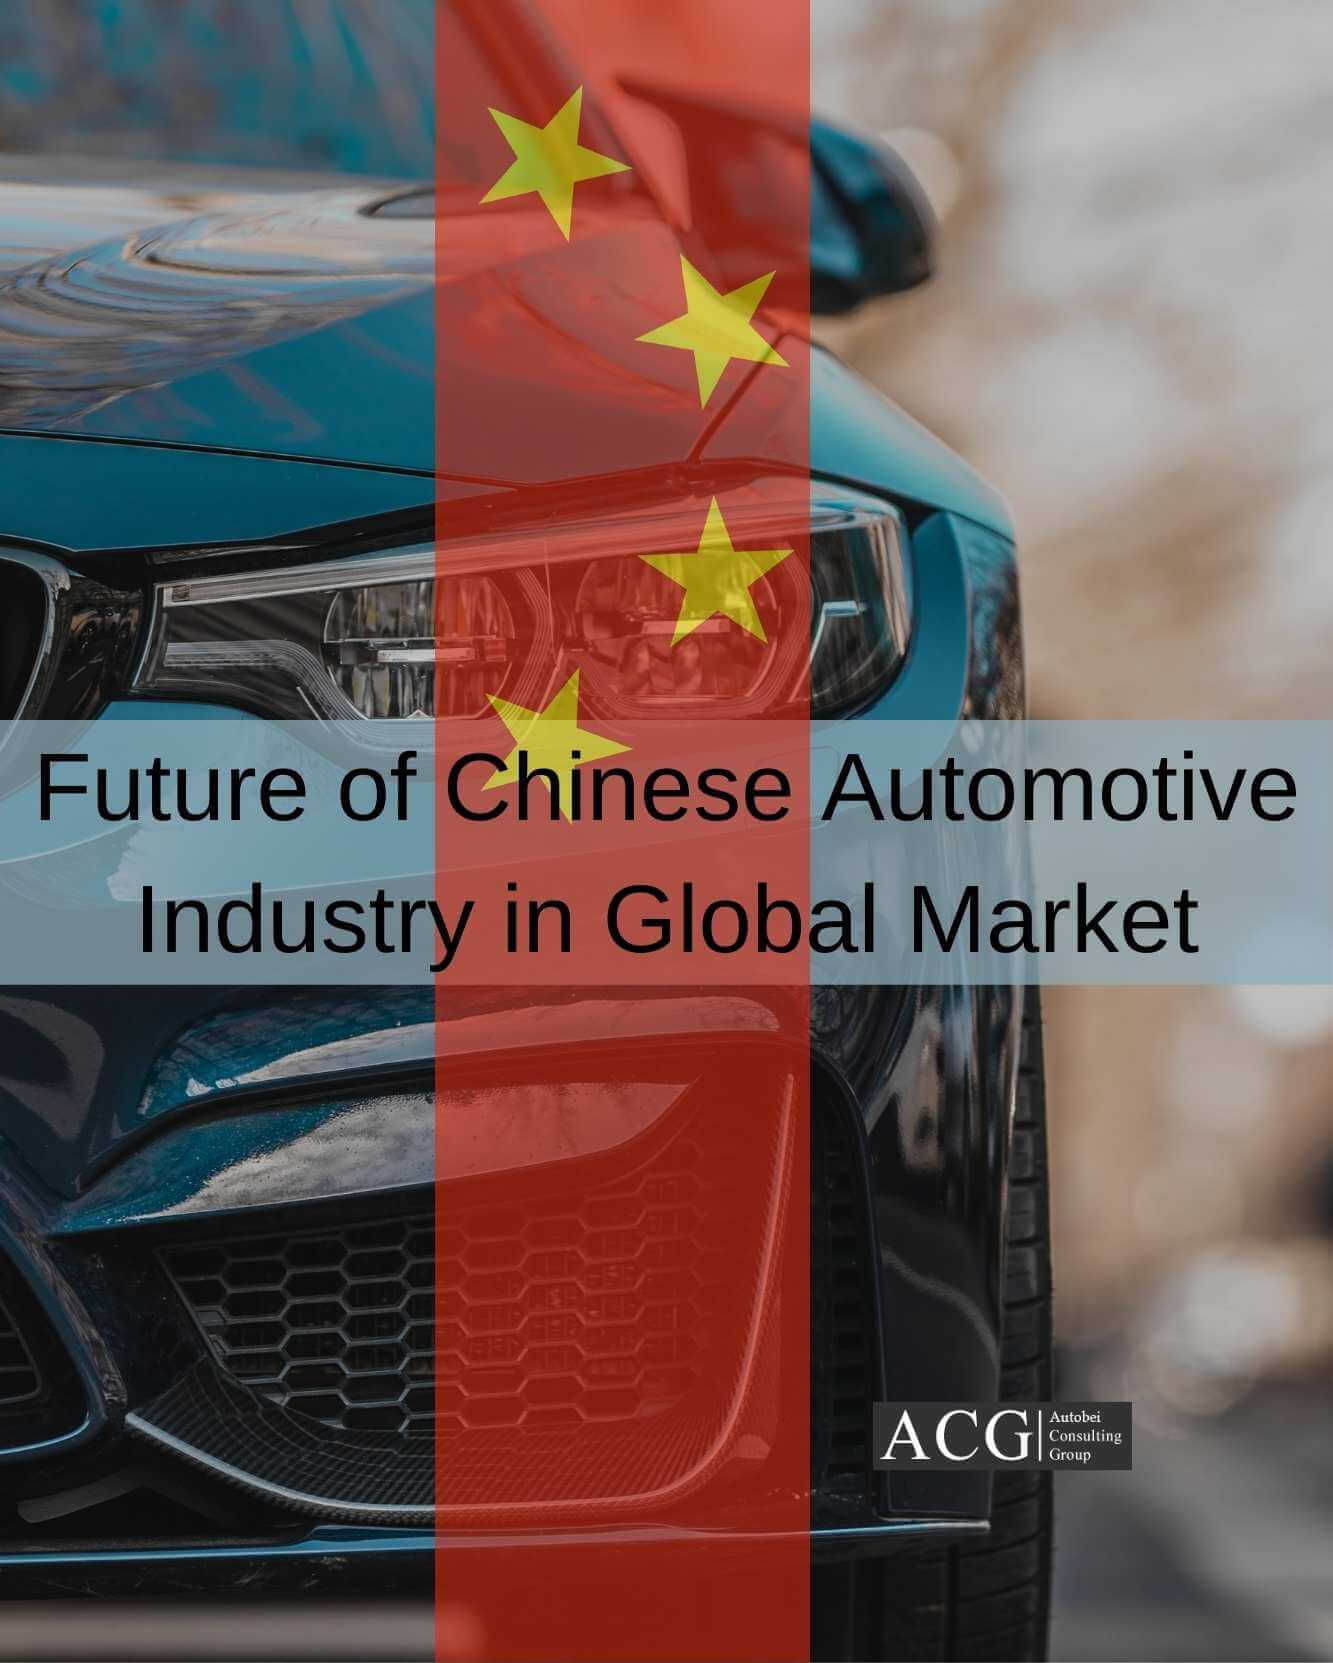 Future of Chinese Automotive Industry in Global Market